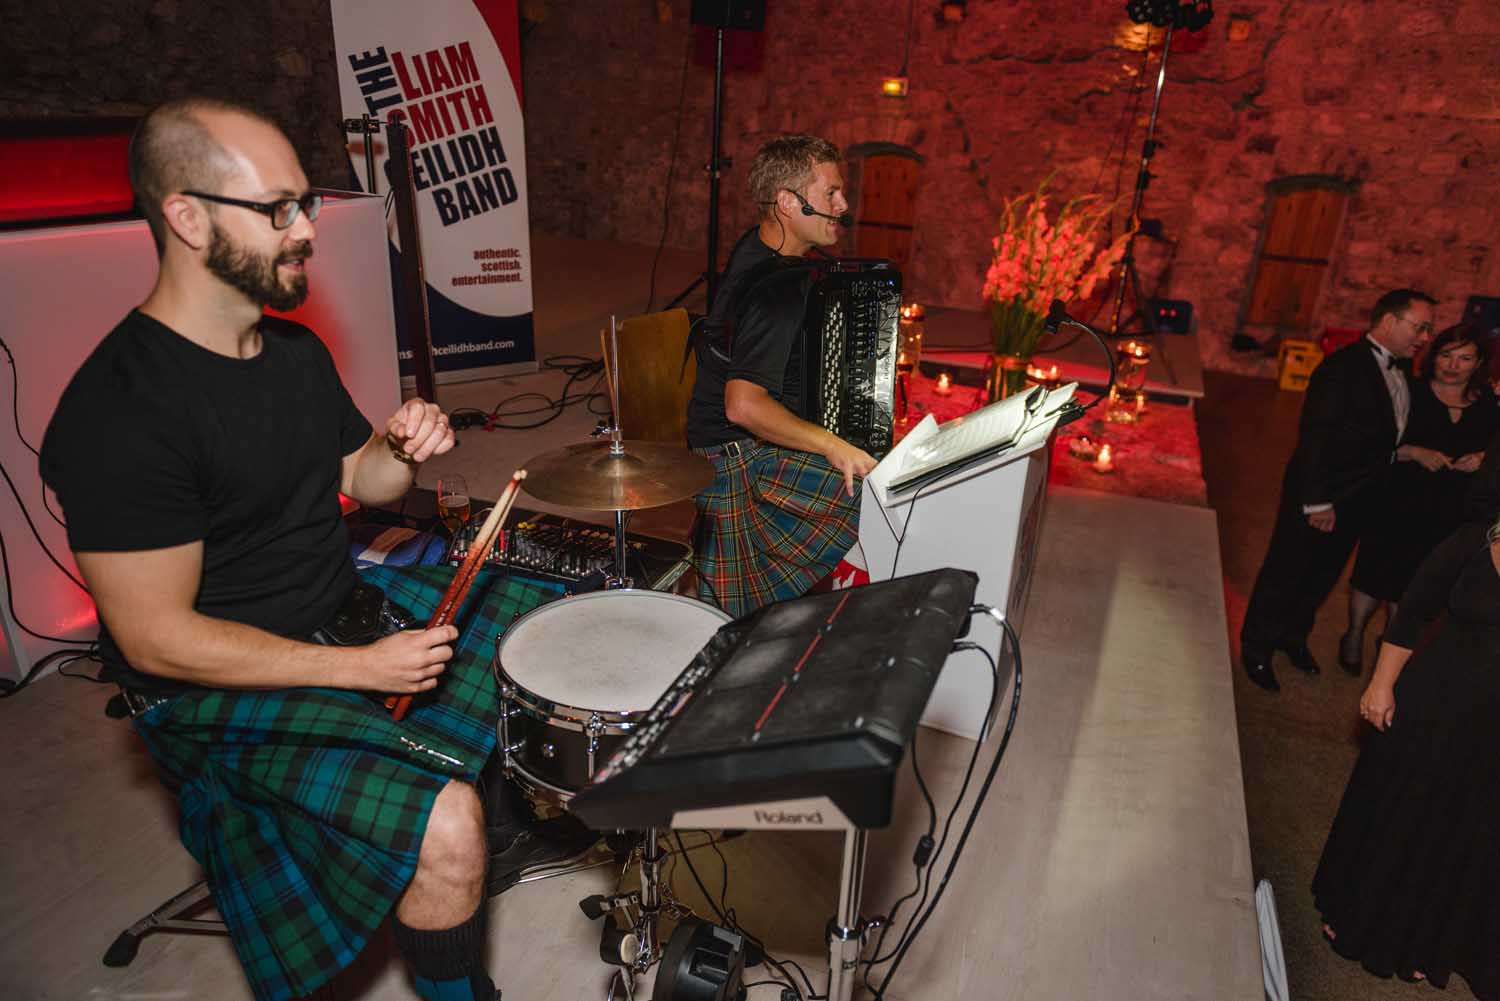 Liam-Smith-Ceilidh-Band